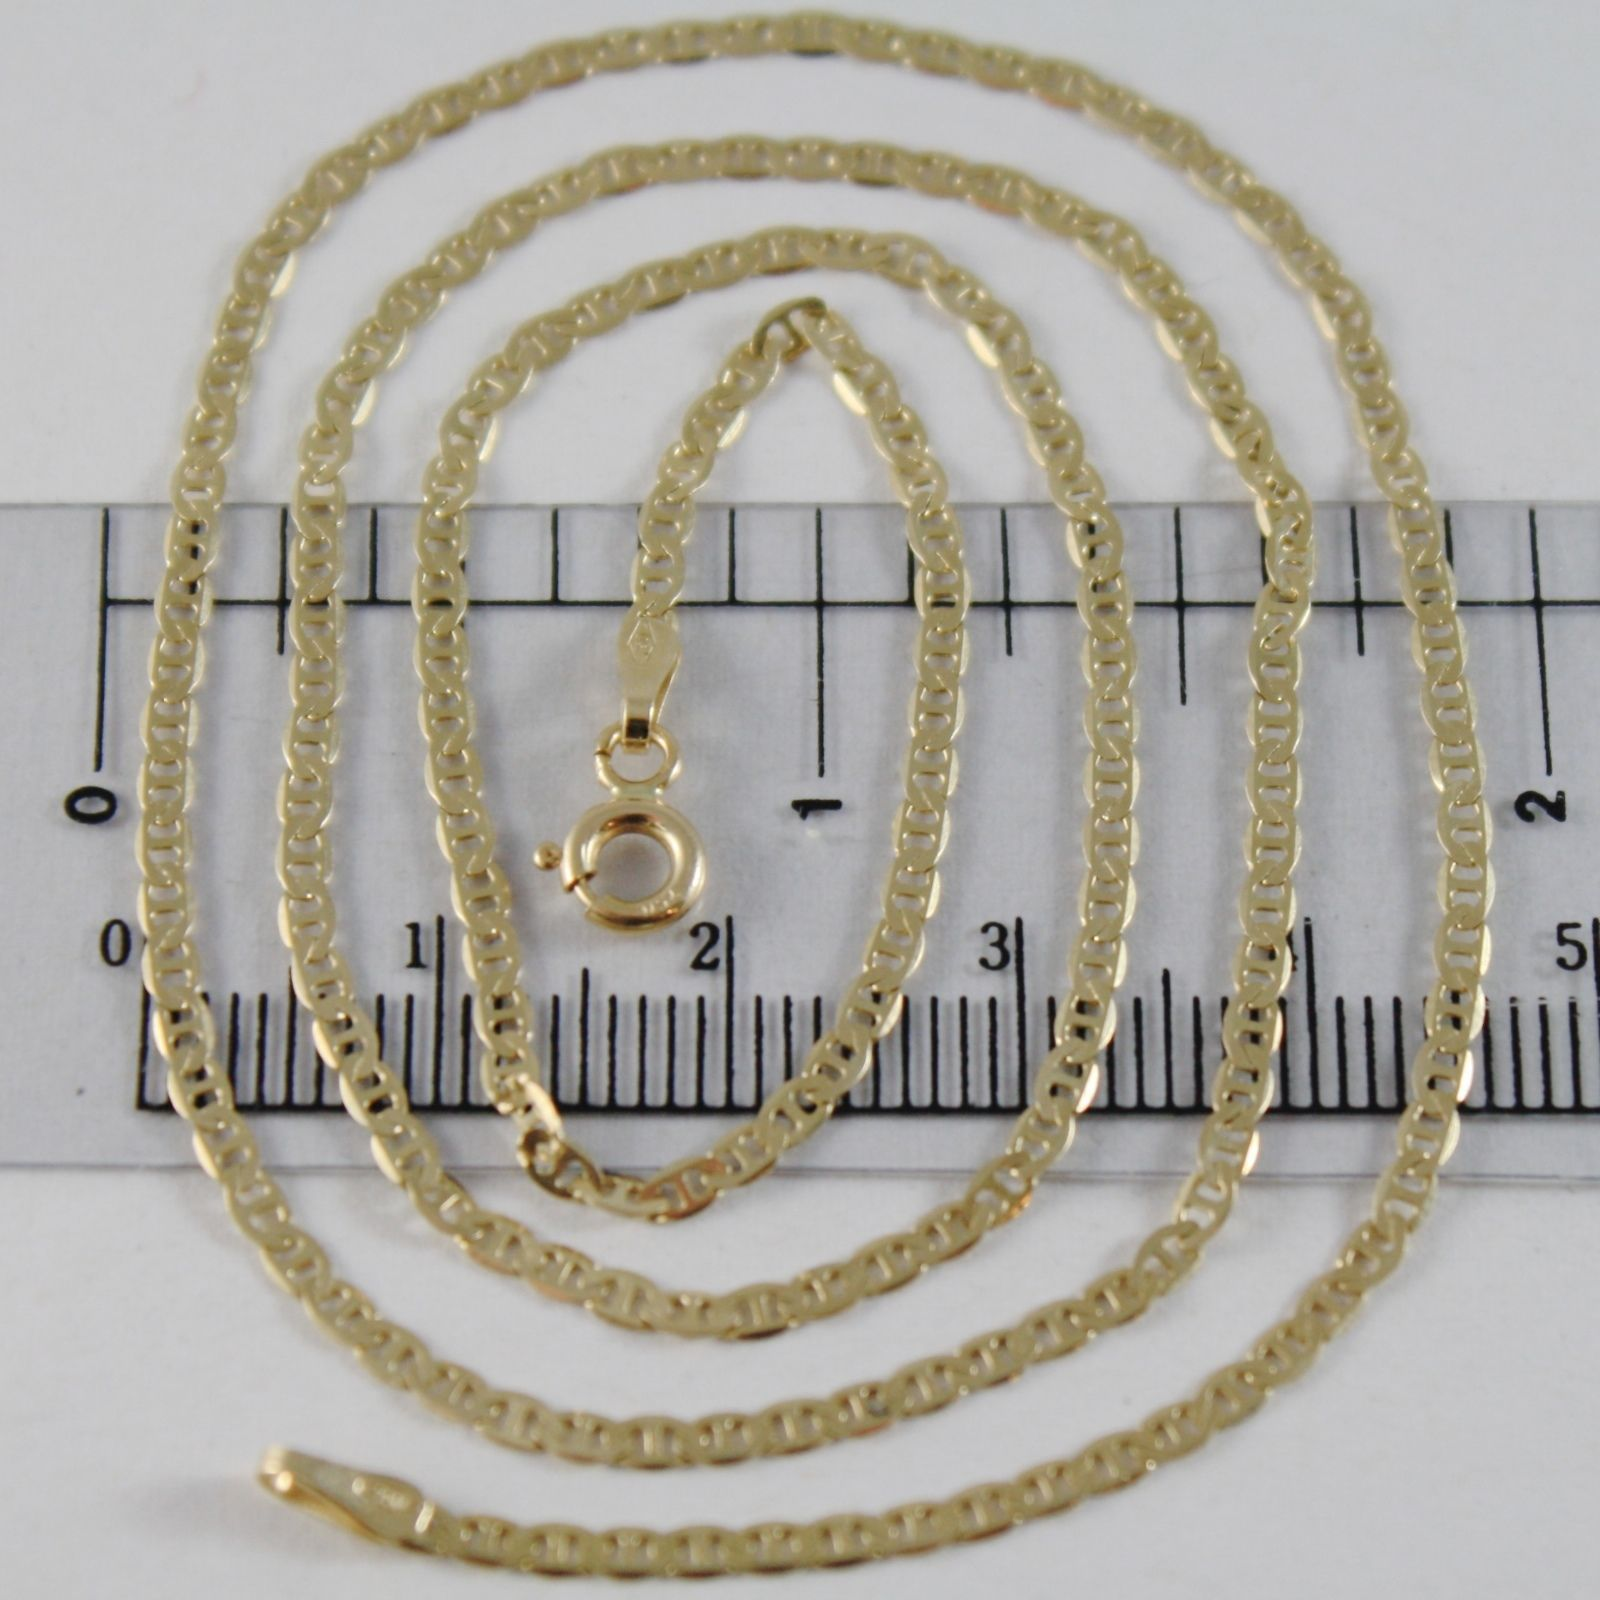 18K YELLOW GOLD CHAIN 2 MM FLAT NAVY MARINER LINK 19.70 INCHES MADE IN ITALY